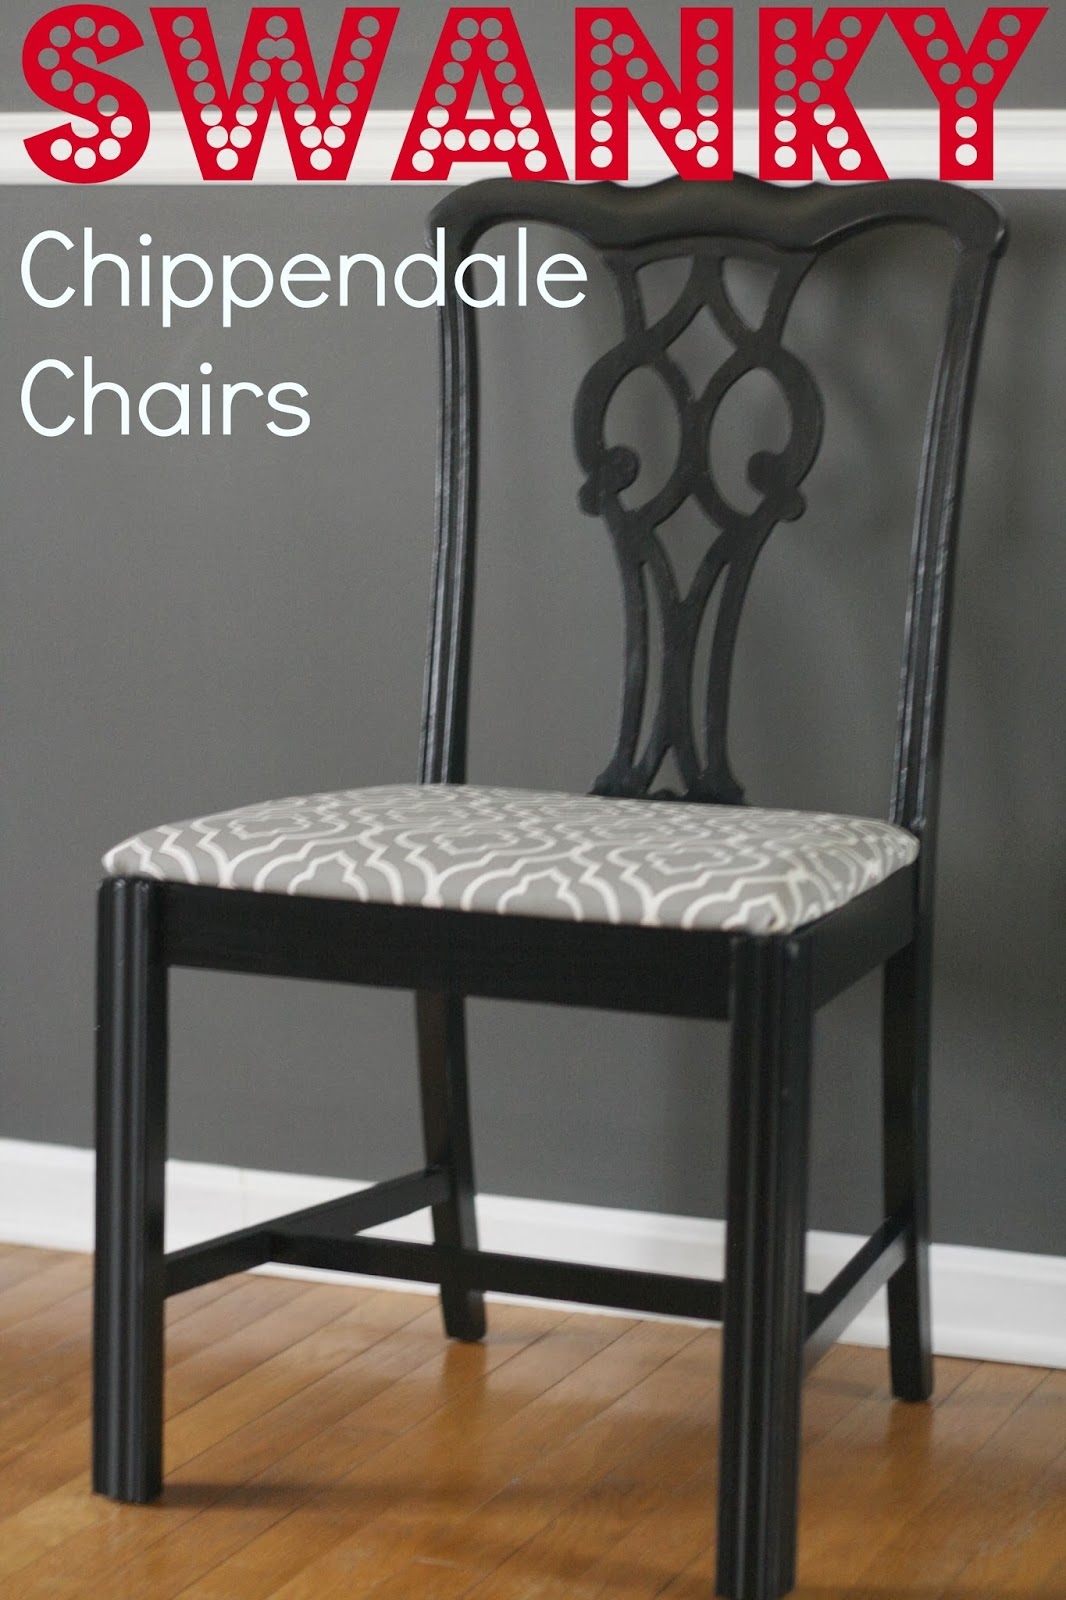 Swanky furniture Swanky Black Chippendale Chairs Eater Chicago Swanky Black Chippendale Chairs Cassie Bustamante